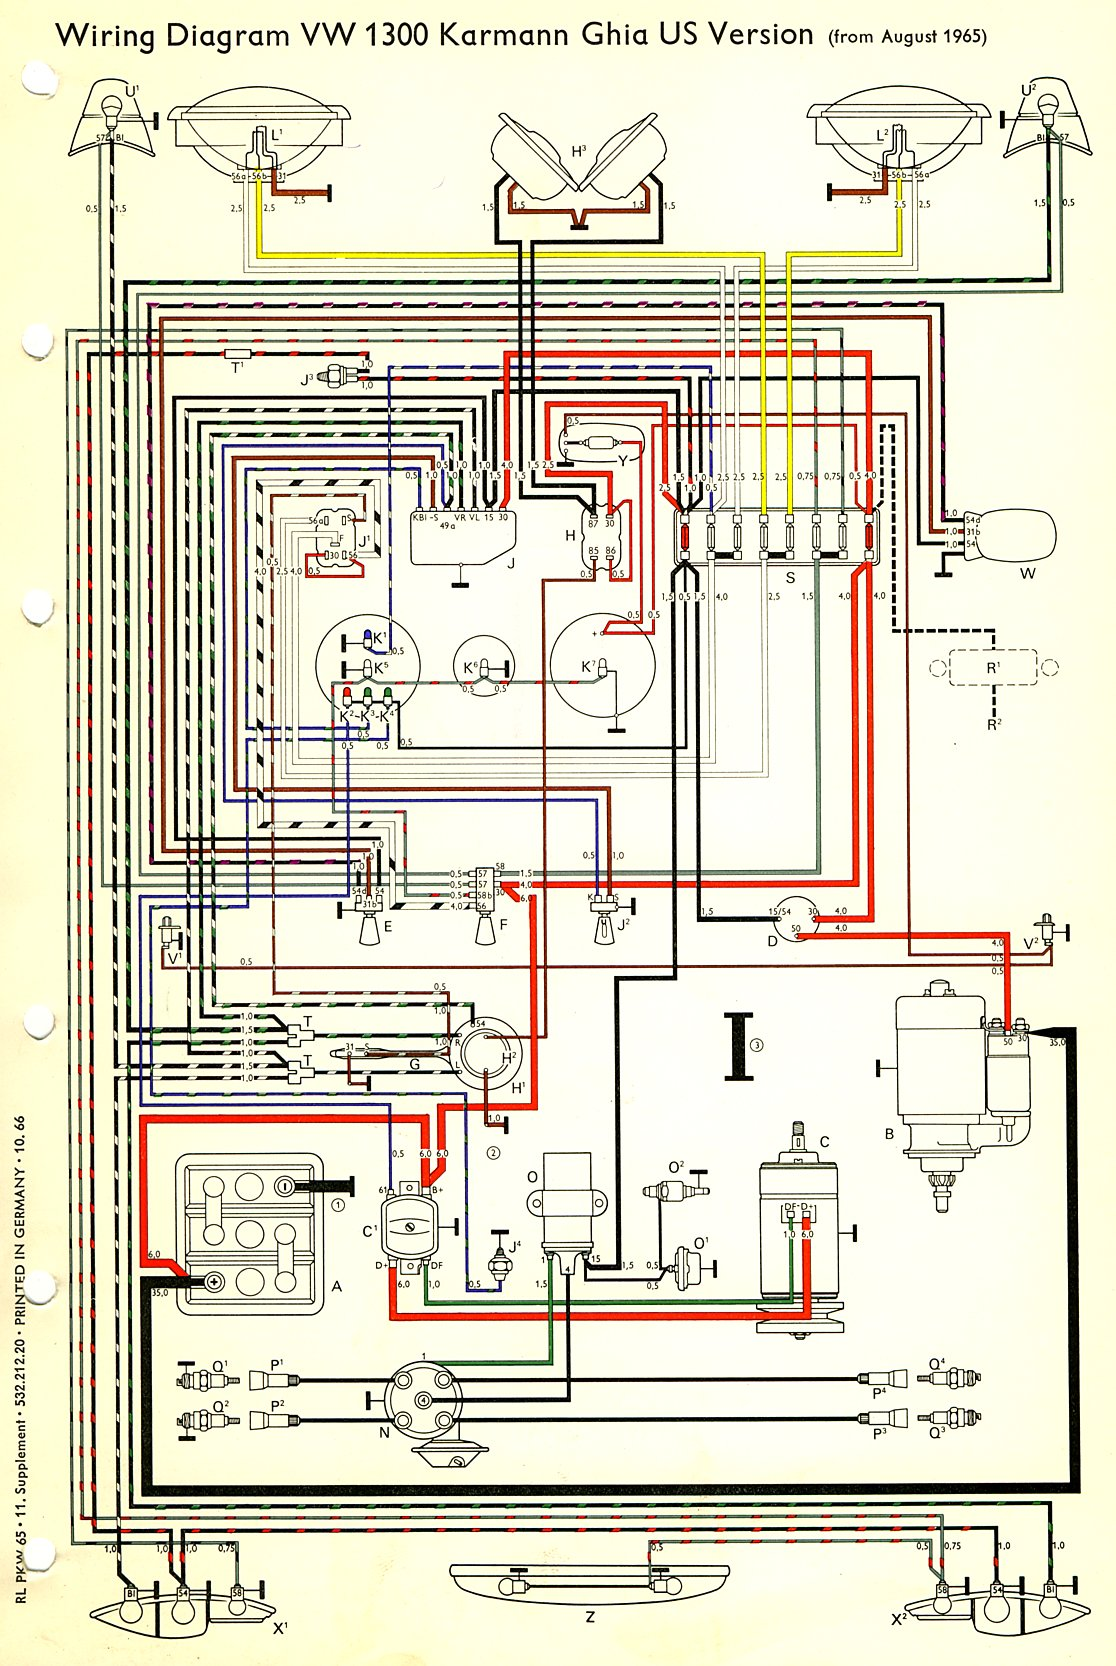 1971 Ghia Vw Fuse Diagram Wiring Data 1998 Cabrio Ac Thesamba Com Karmann Diagrams Rh 2012 Passat 2005